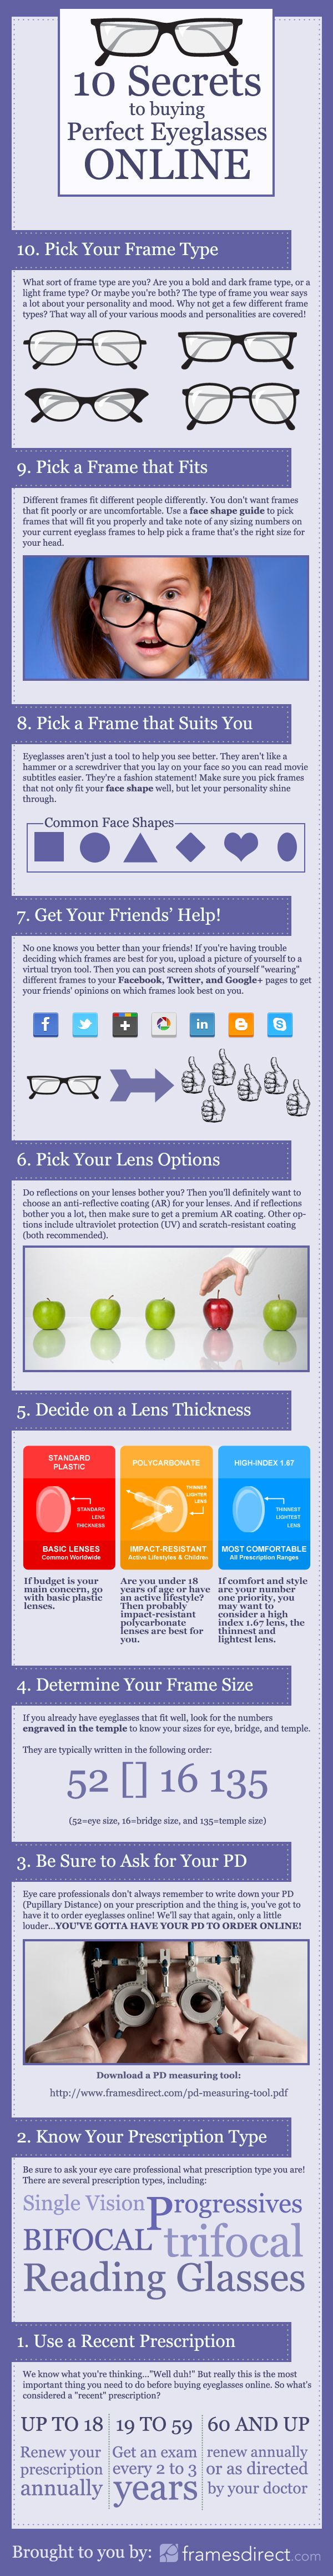 10 Secrets to Buying Perfect Eyeglasses Online Infographic #eyeglasses #infographic